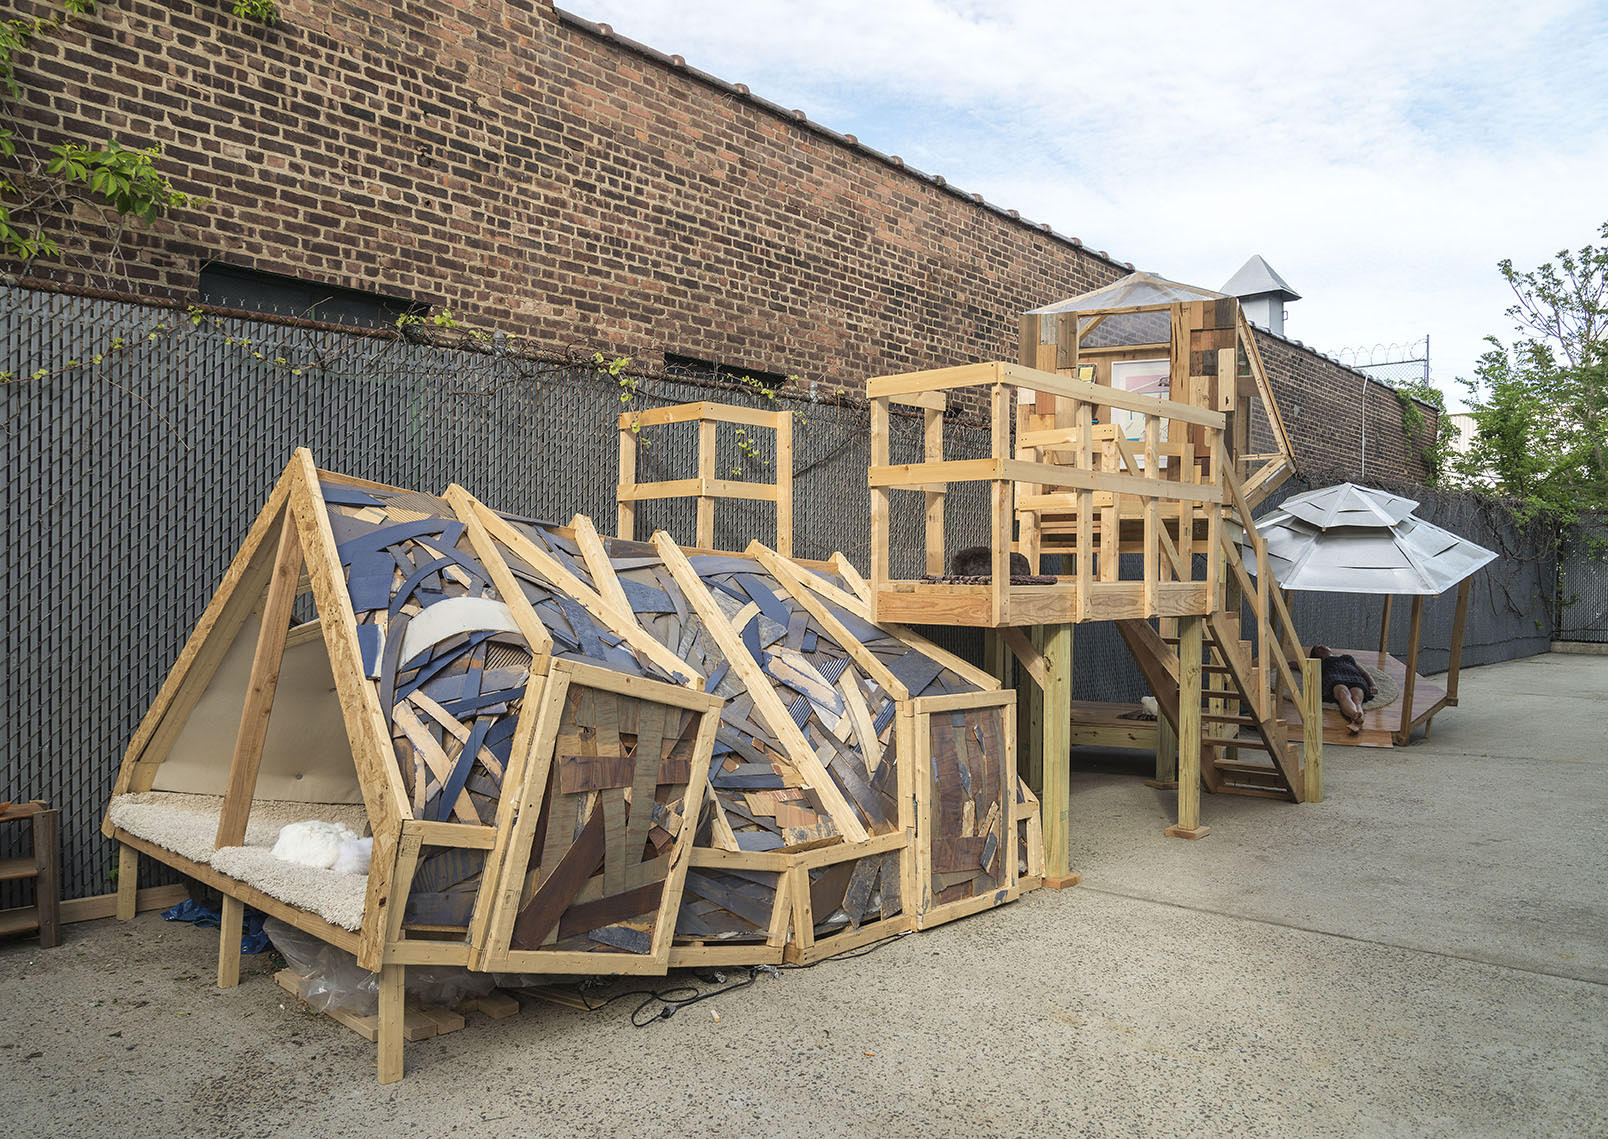 Angelica Teuta ©2015 , Emotional Architecture: Shelter . Outdoor structure, interactive sculpture. Courtesy of the artist.